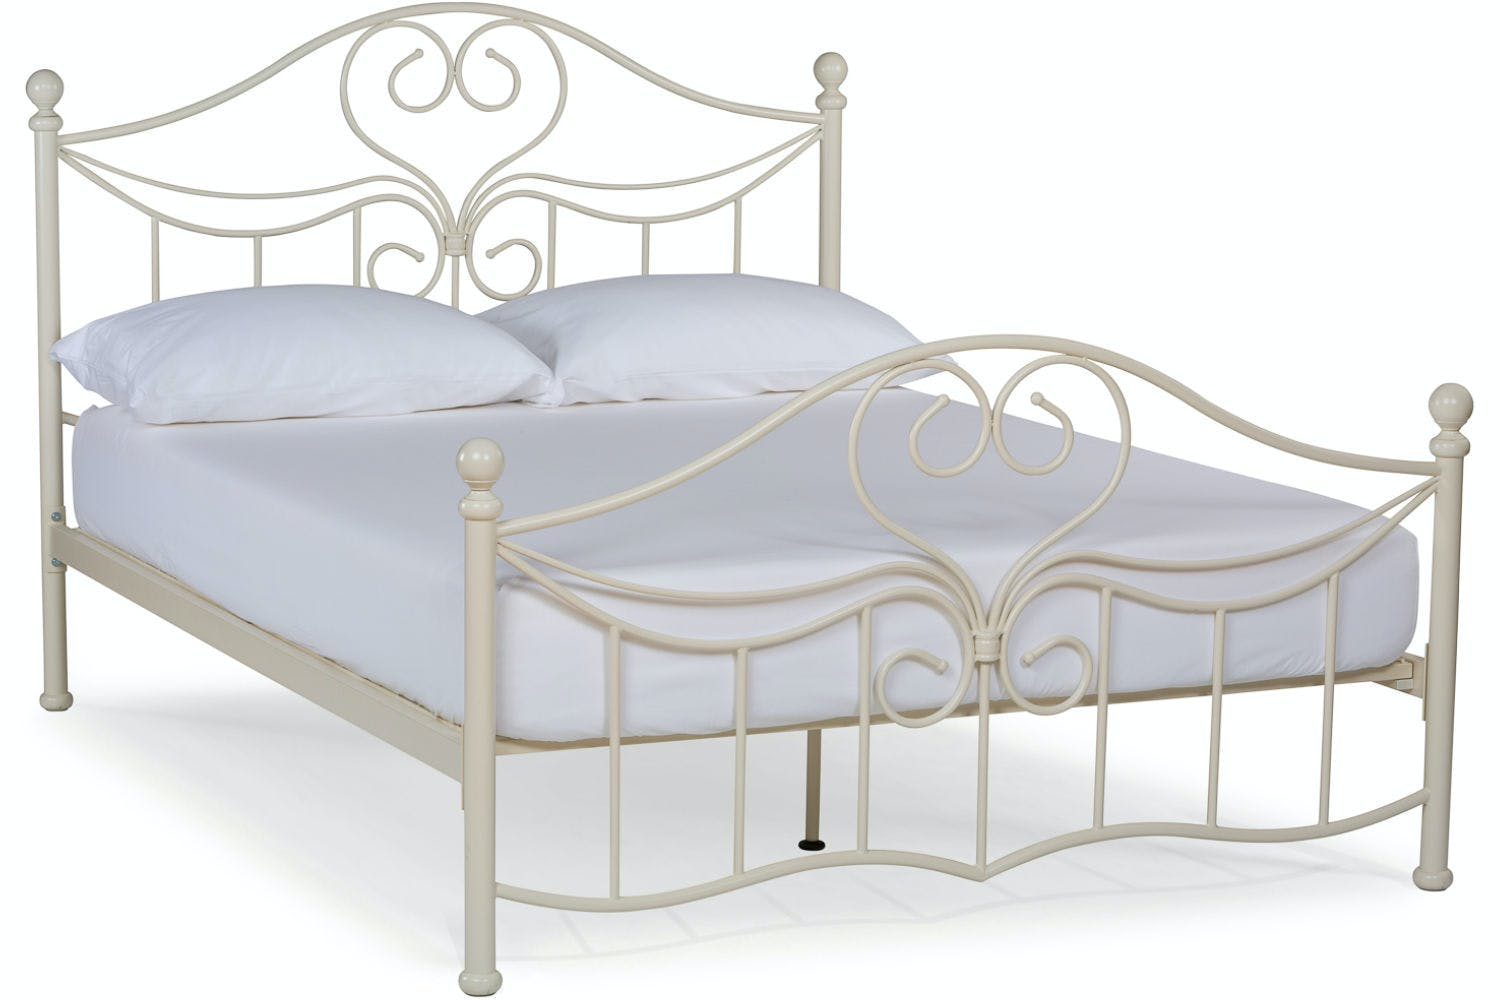 Julliet small double metal bed frame 4ft ivory ireland for Small bed frame